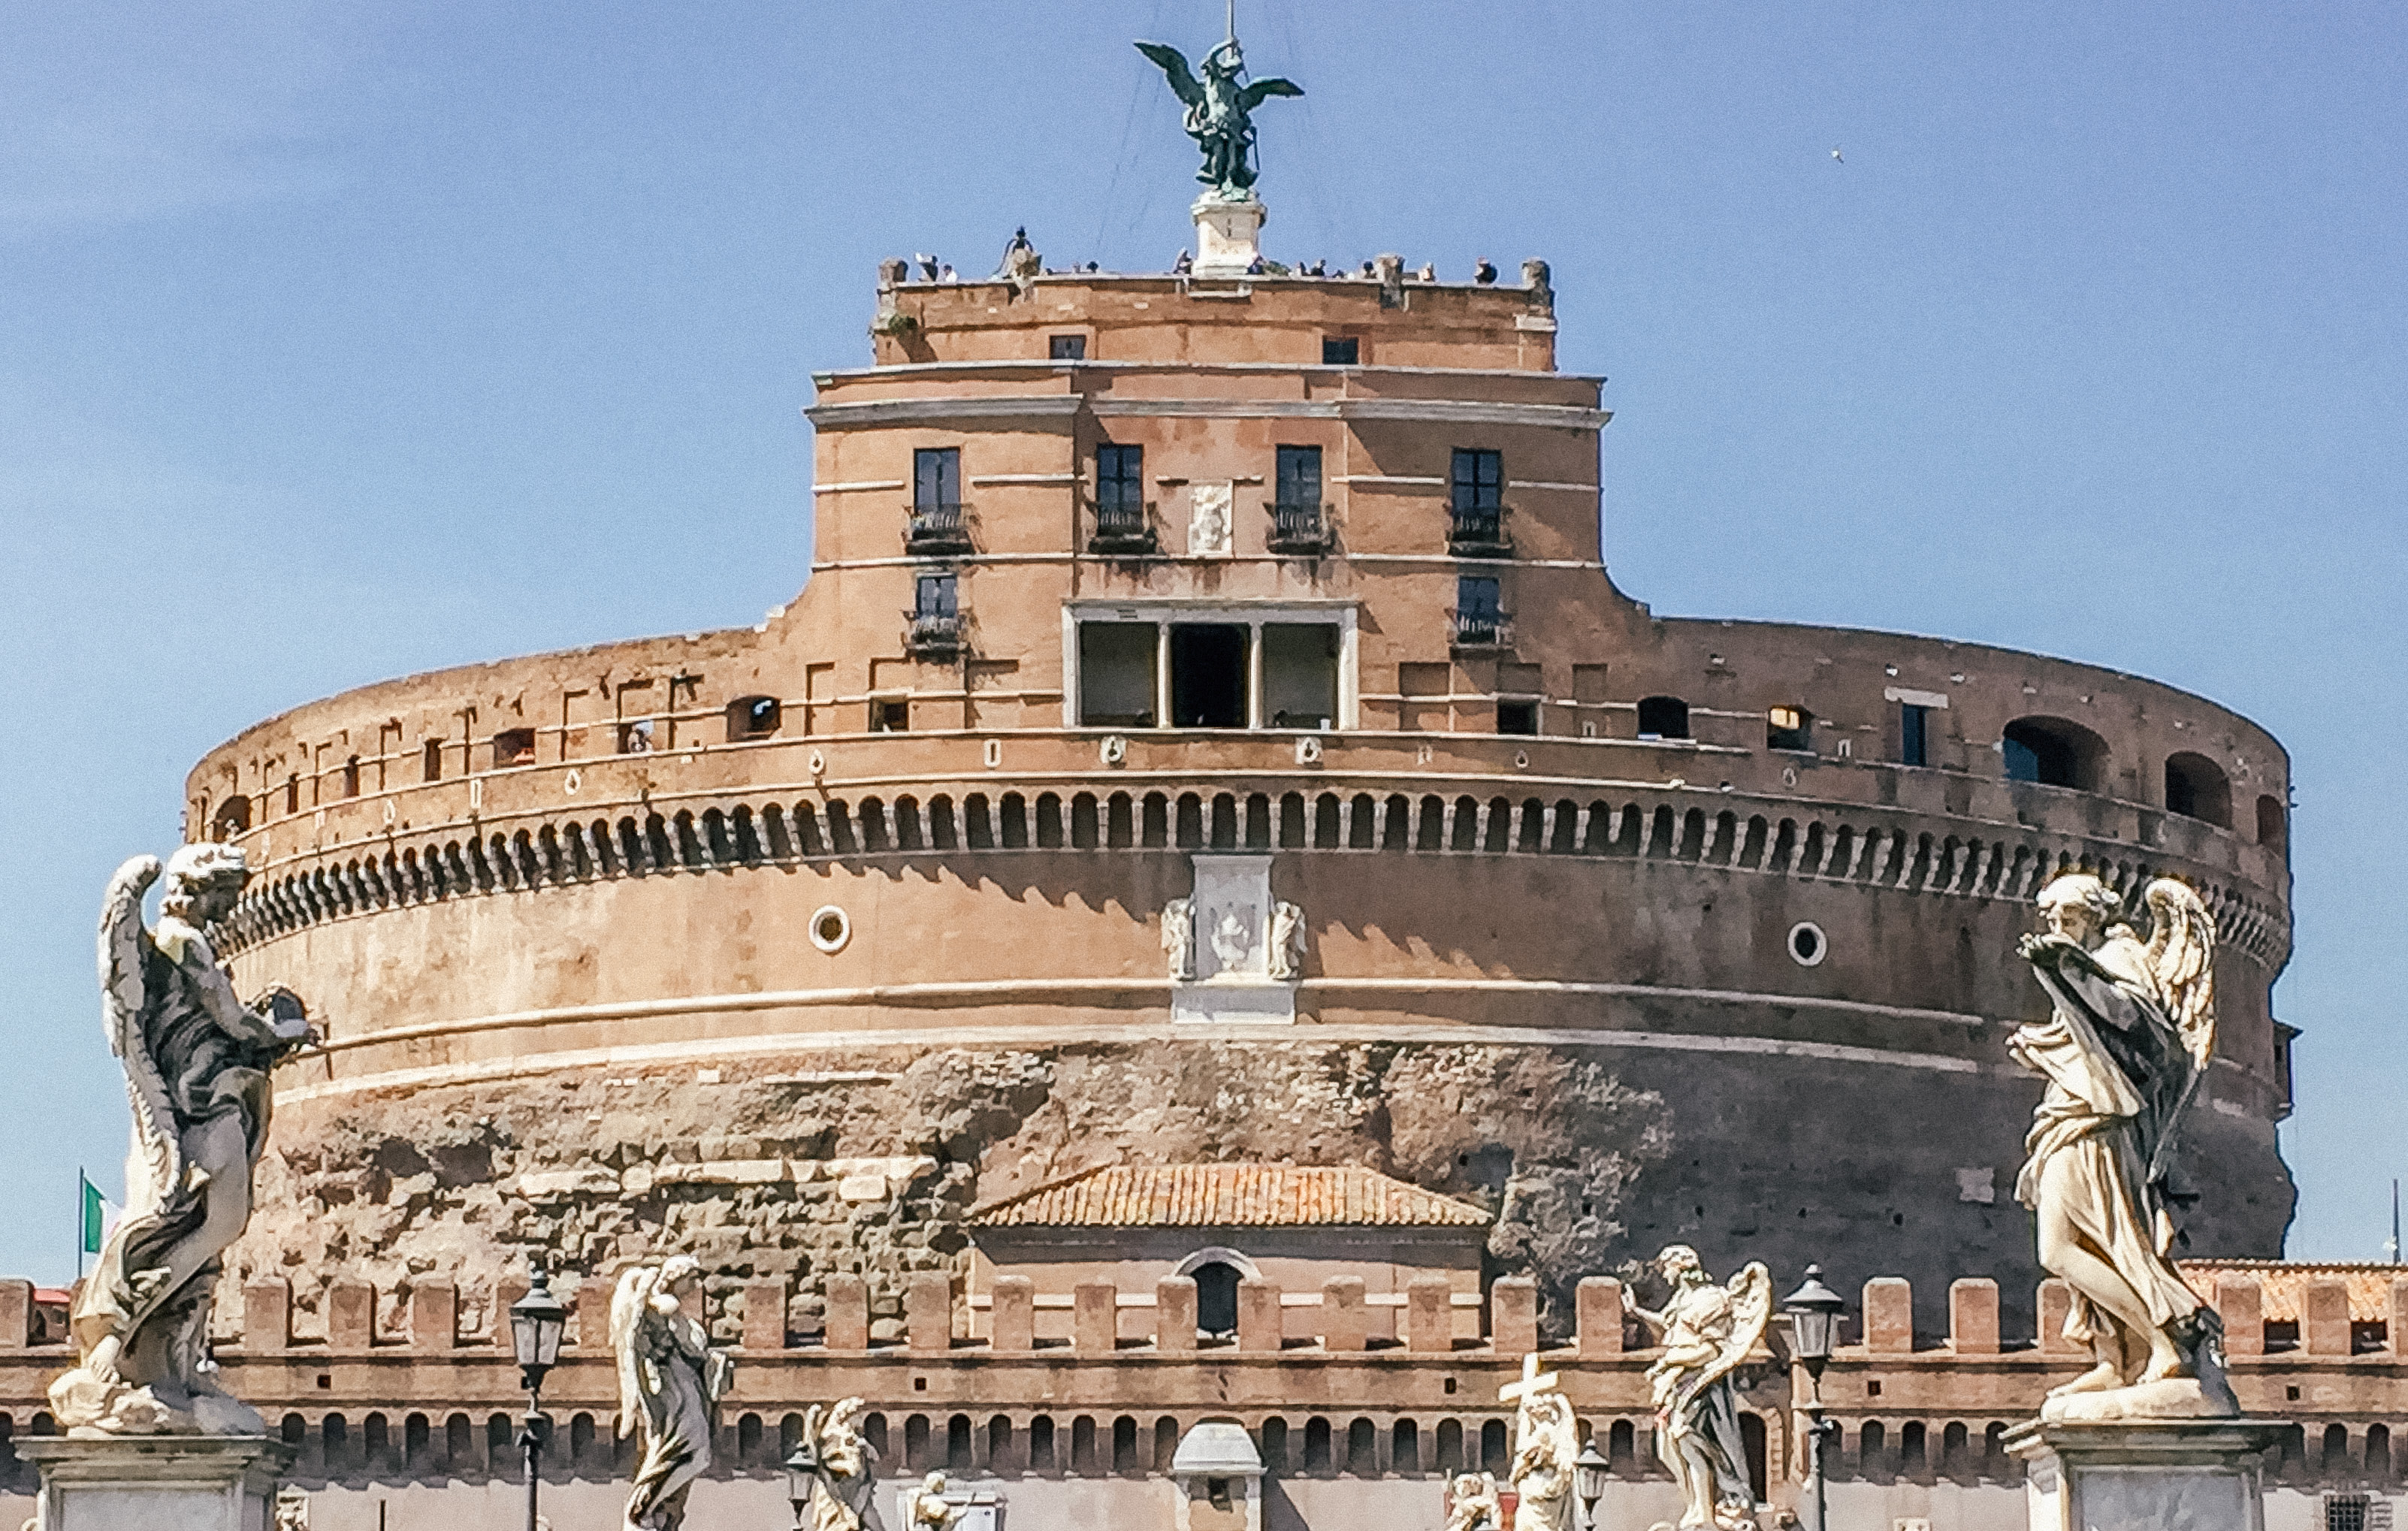 Exploring rome in 24 hours; visiting Castle St Angelo